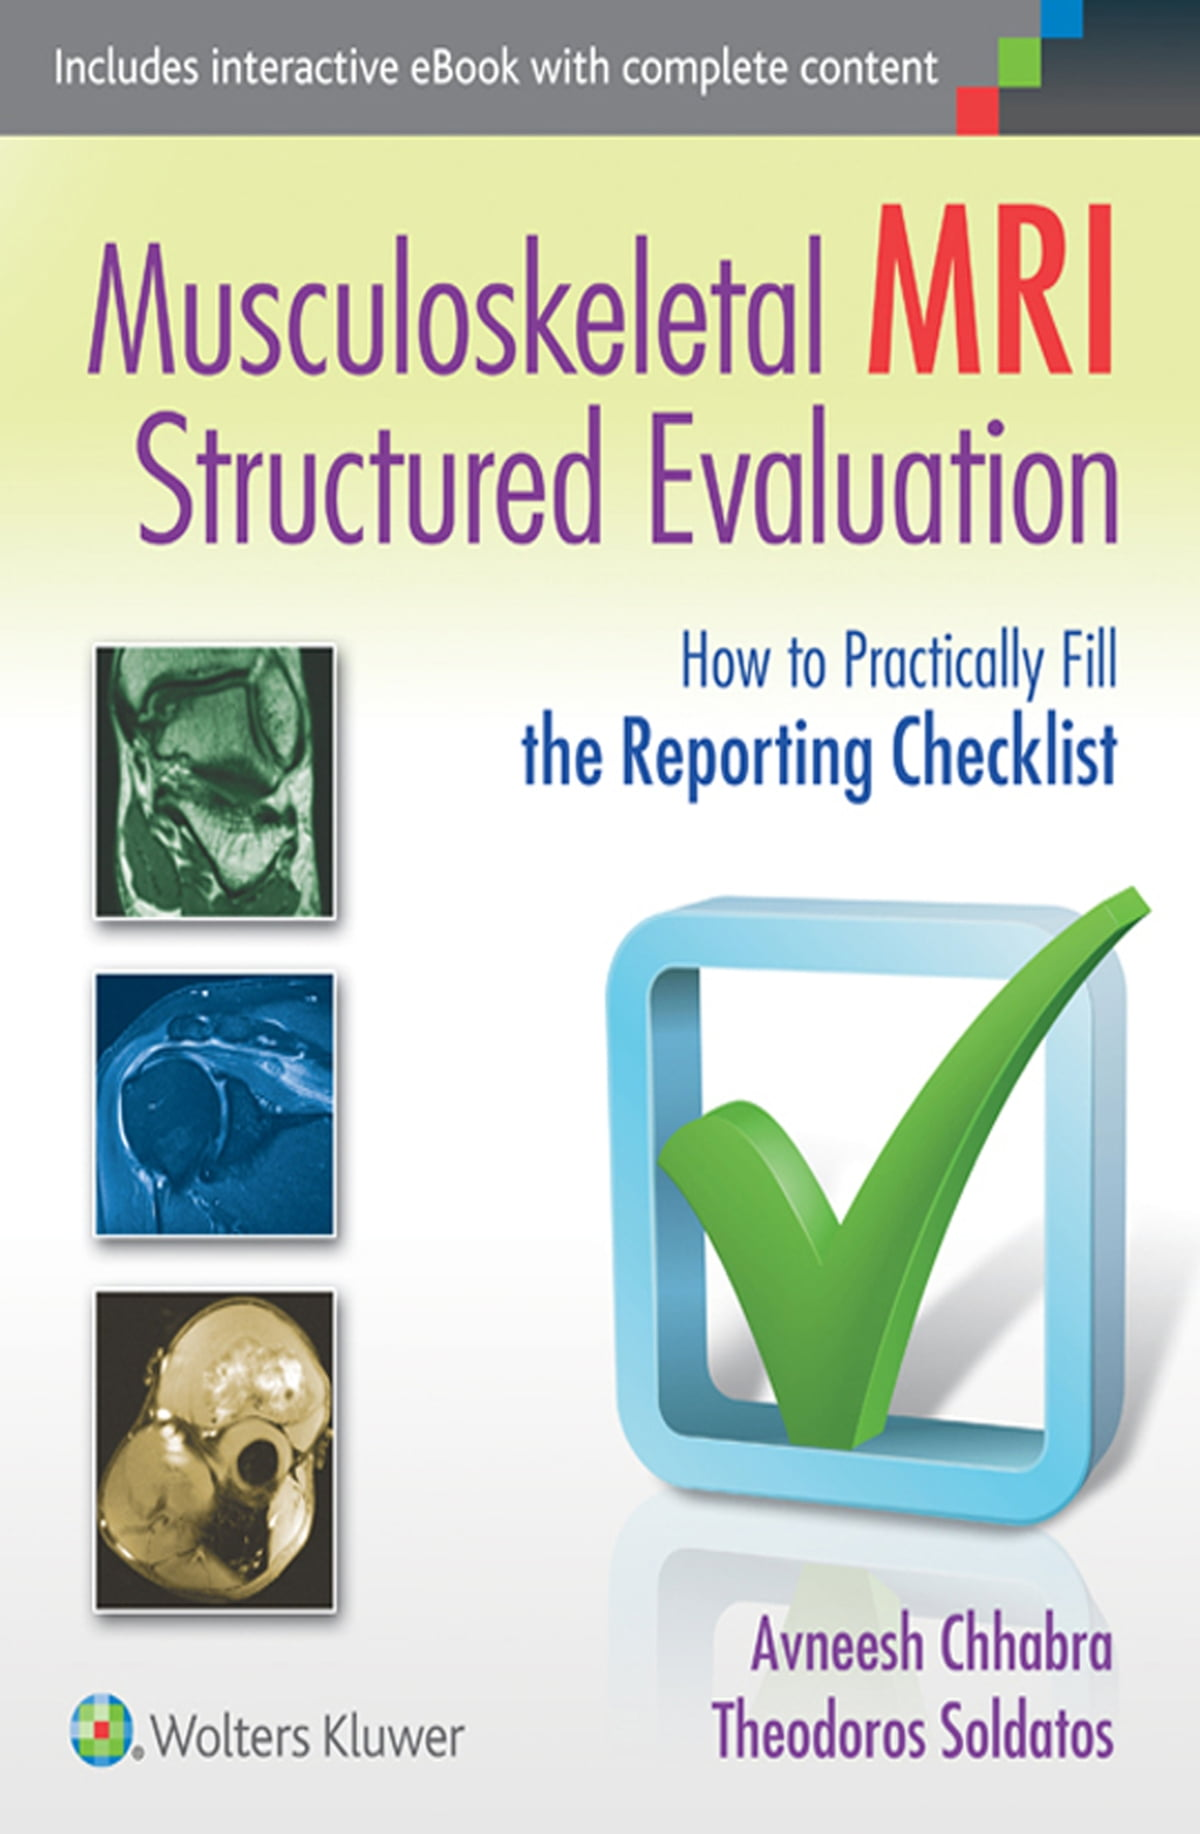 Musculoskeletal MRI Structured Evaluation eBook by Avneesh Chhabra ...